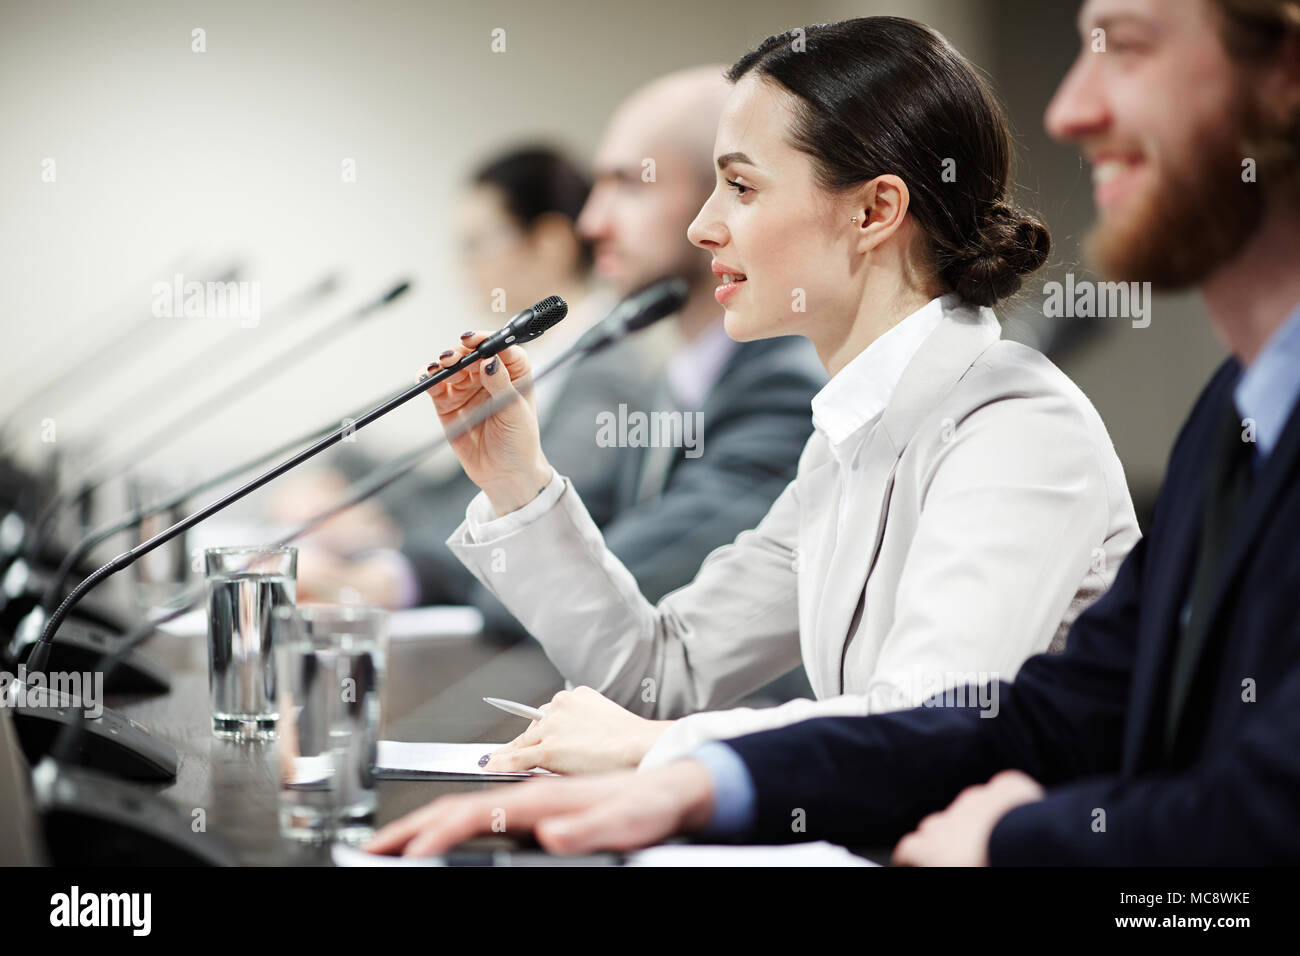 One of young politicians speaking in microphone among other participants of conference - Stock Image